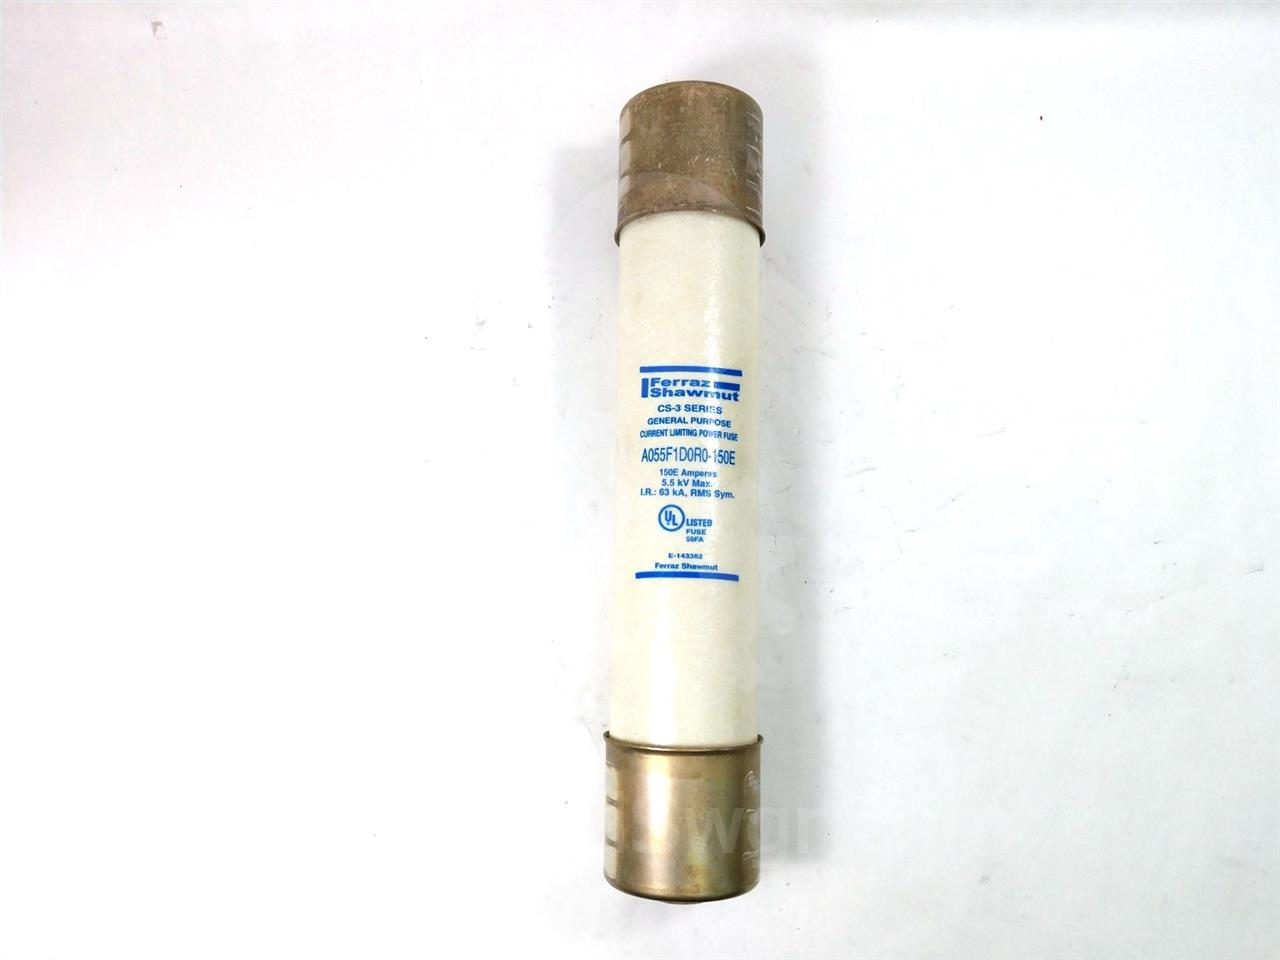 150E FERRAZ SHAWMUT POWER FUSE 5.5KV UNUSED SURPLUS